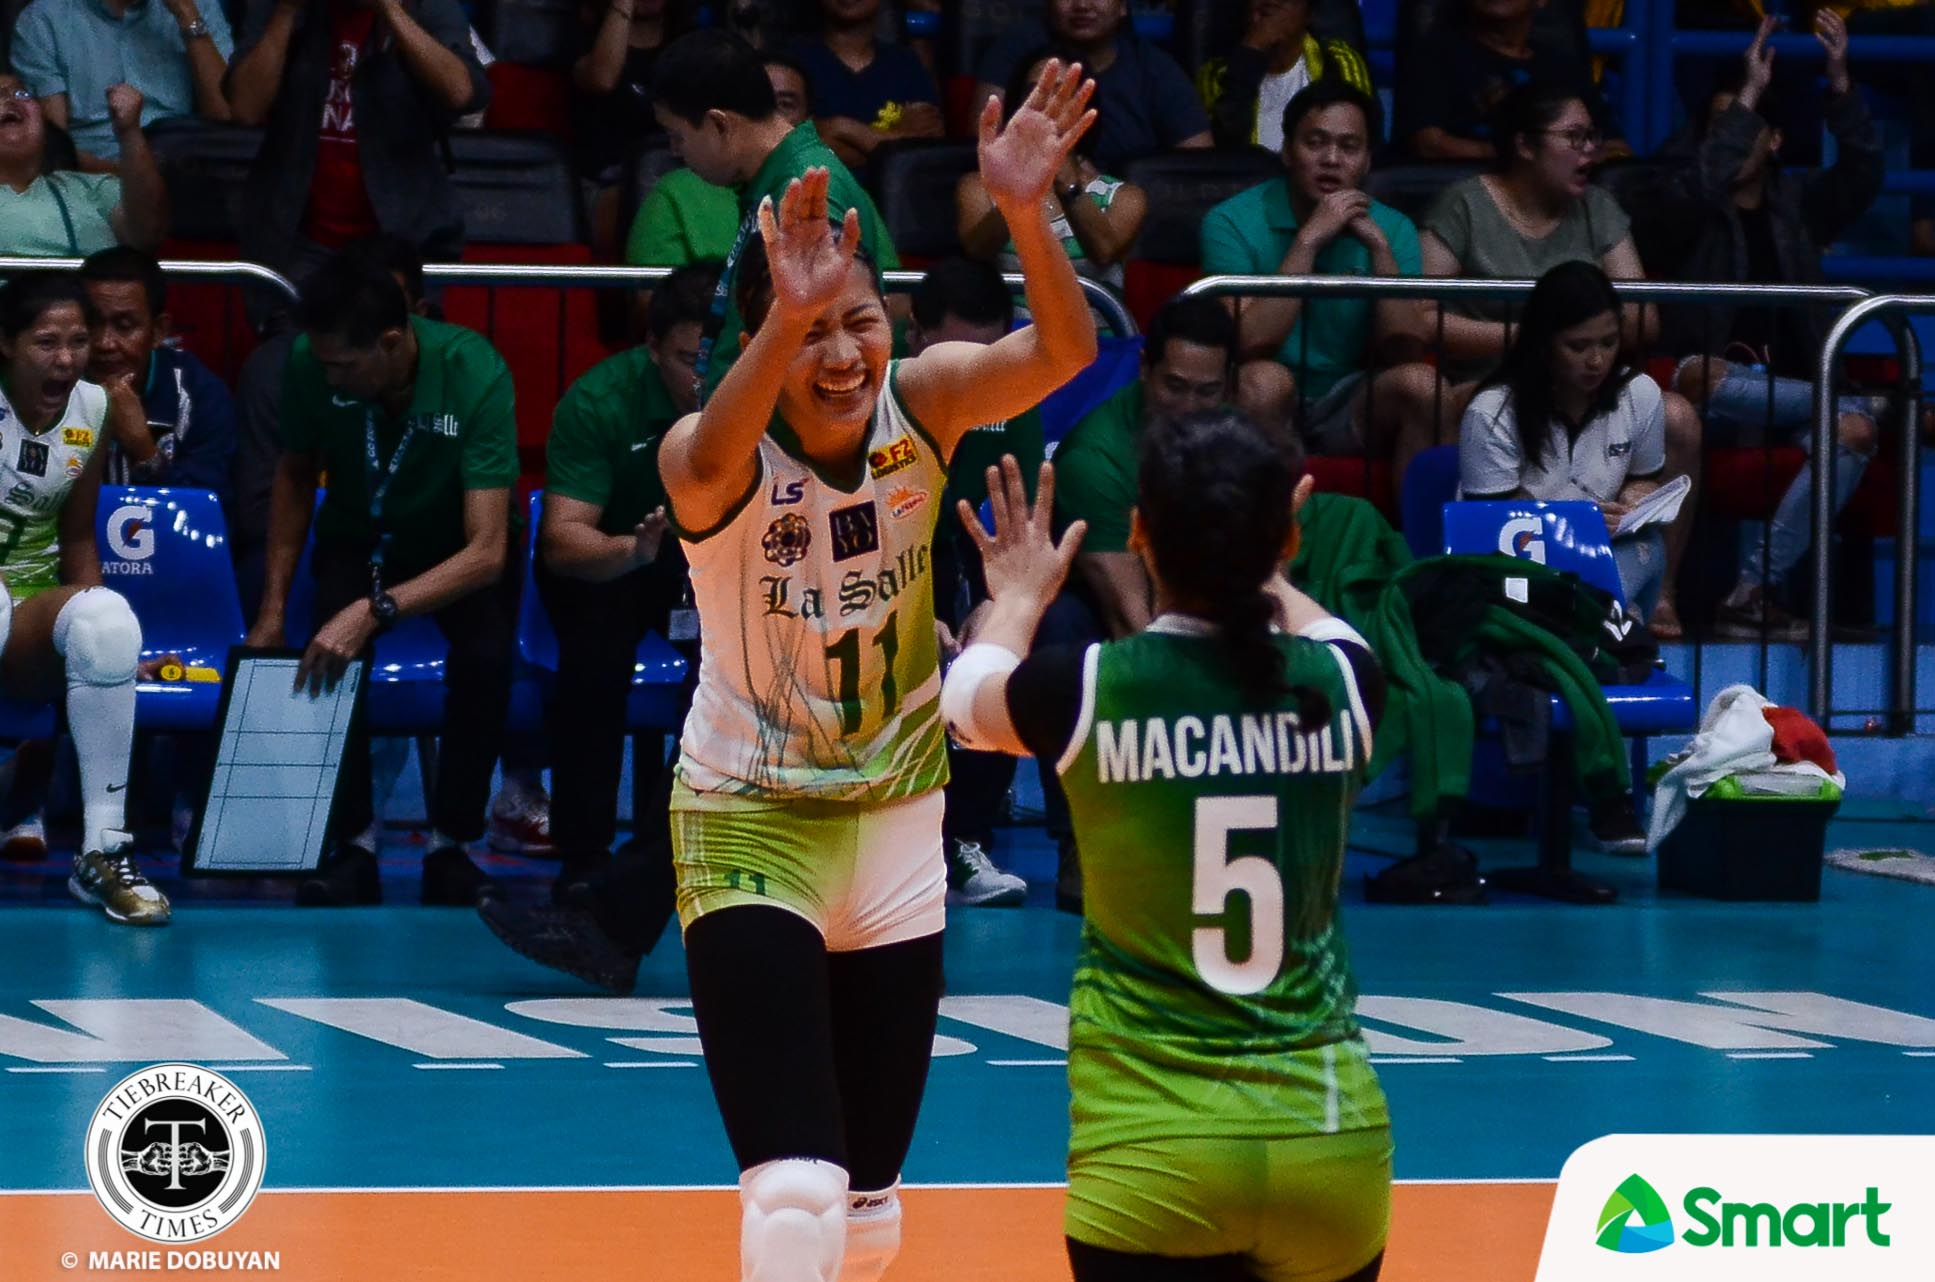 Tiebreaker Times La Salle quells UP to remain unscathed DLSU News UAAP UP Volleyball  UP Women's Volleyball UAAP Season 80 Women's Volleyball UAAP Season 80 Tin Tiamzon Ramil De Jesus Michelle Cobb Kianna Dy Isa Molde Godfrey Okumu DLSU Women's Volleyball Diana Carlos Dawn Macandili